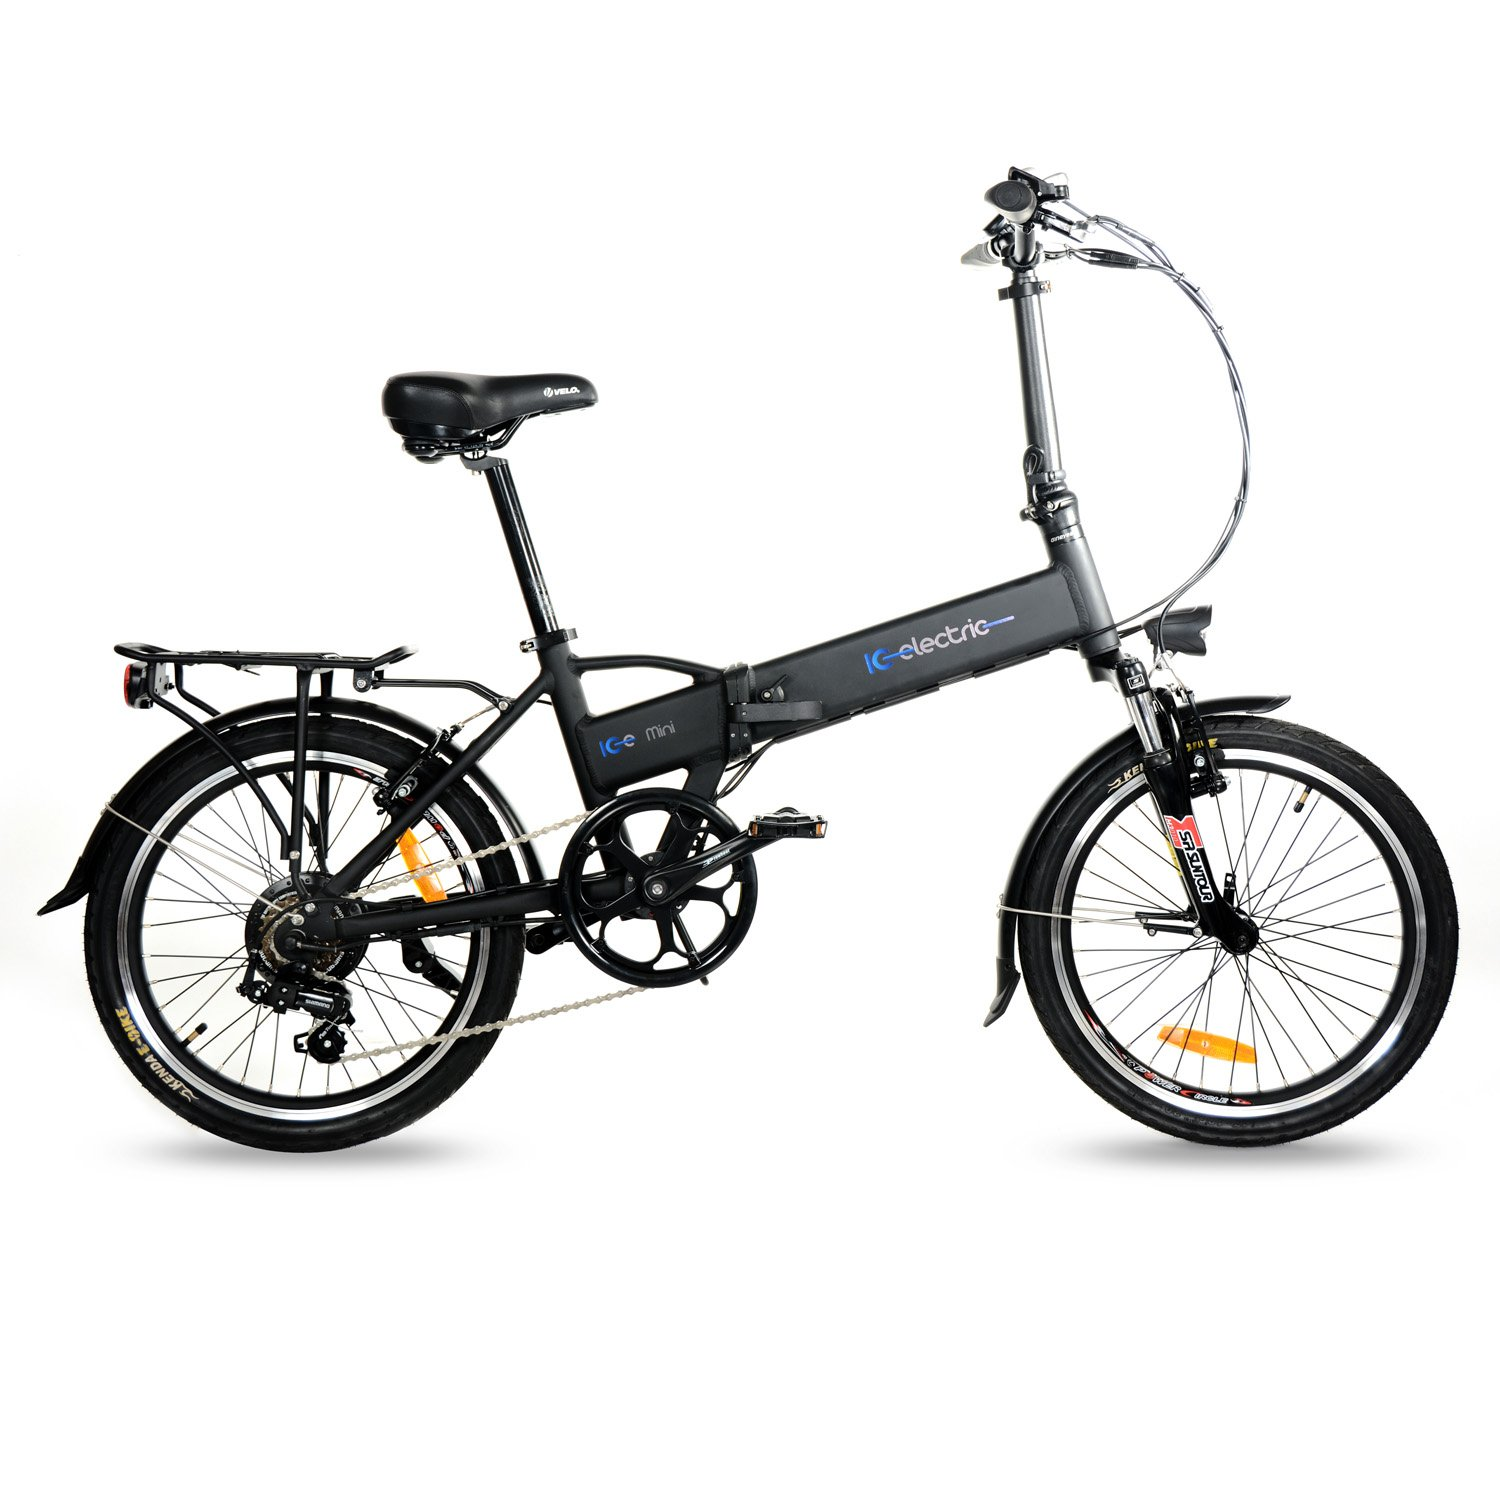 IC Electric Mini Bicicleta plegable Unisex adulto Negro Única